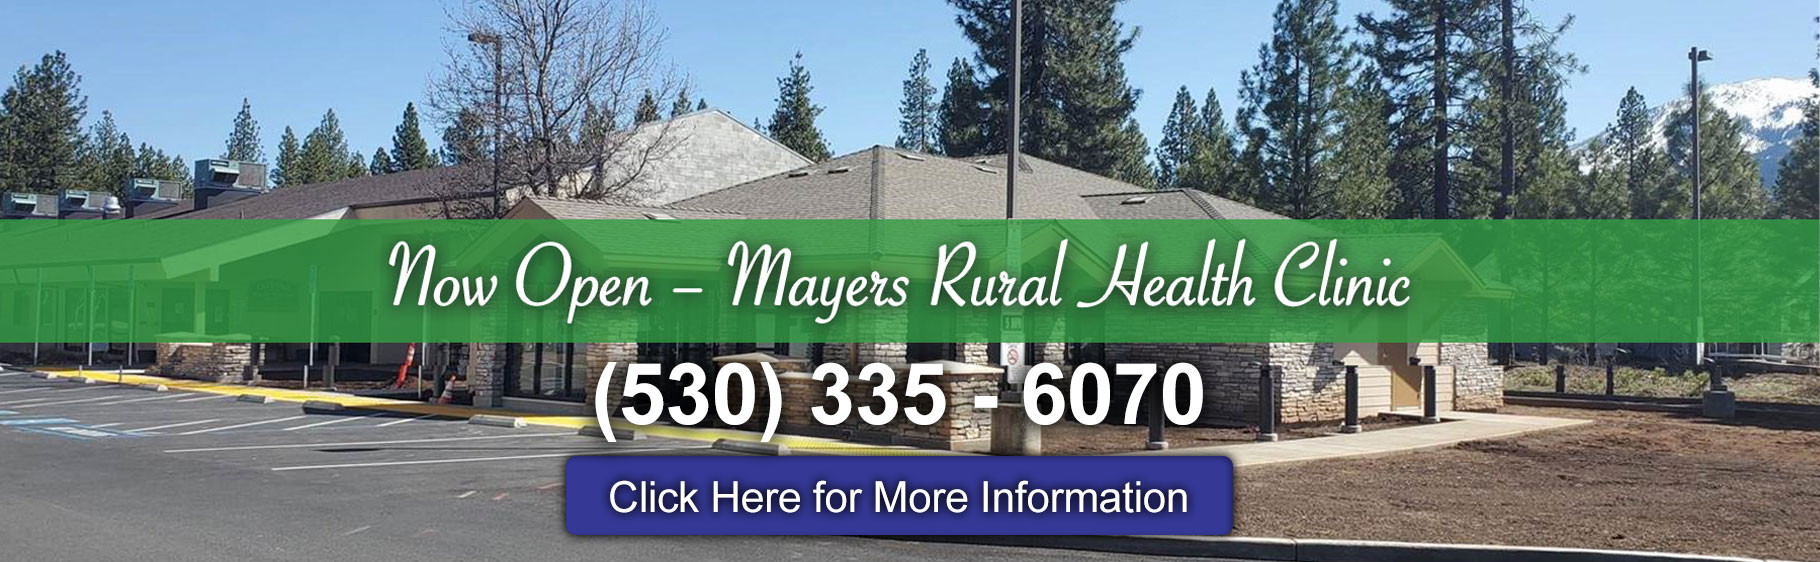 Banner background picture of Mayers Rural Health Clinic. There is a parking lot outside of the building, light posts, pine trees, and the mountain in the distance with snow on top of it  Banner says: Now Open- Mayers Rural Health Clinic (530) 335-6070  Click Here for More Information (Link)